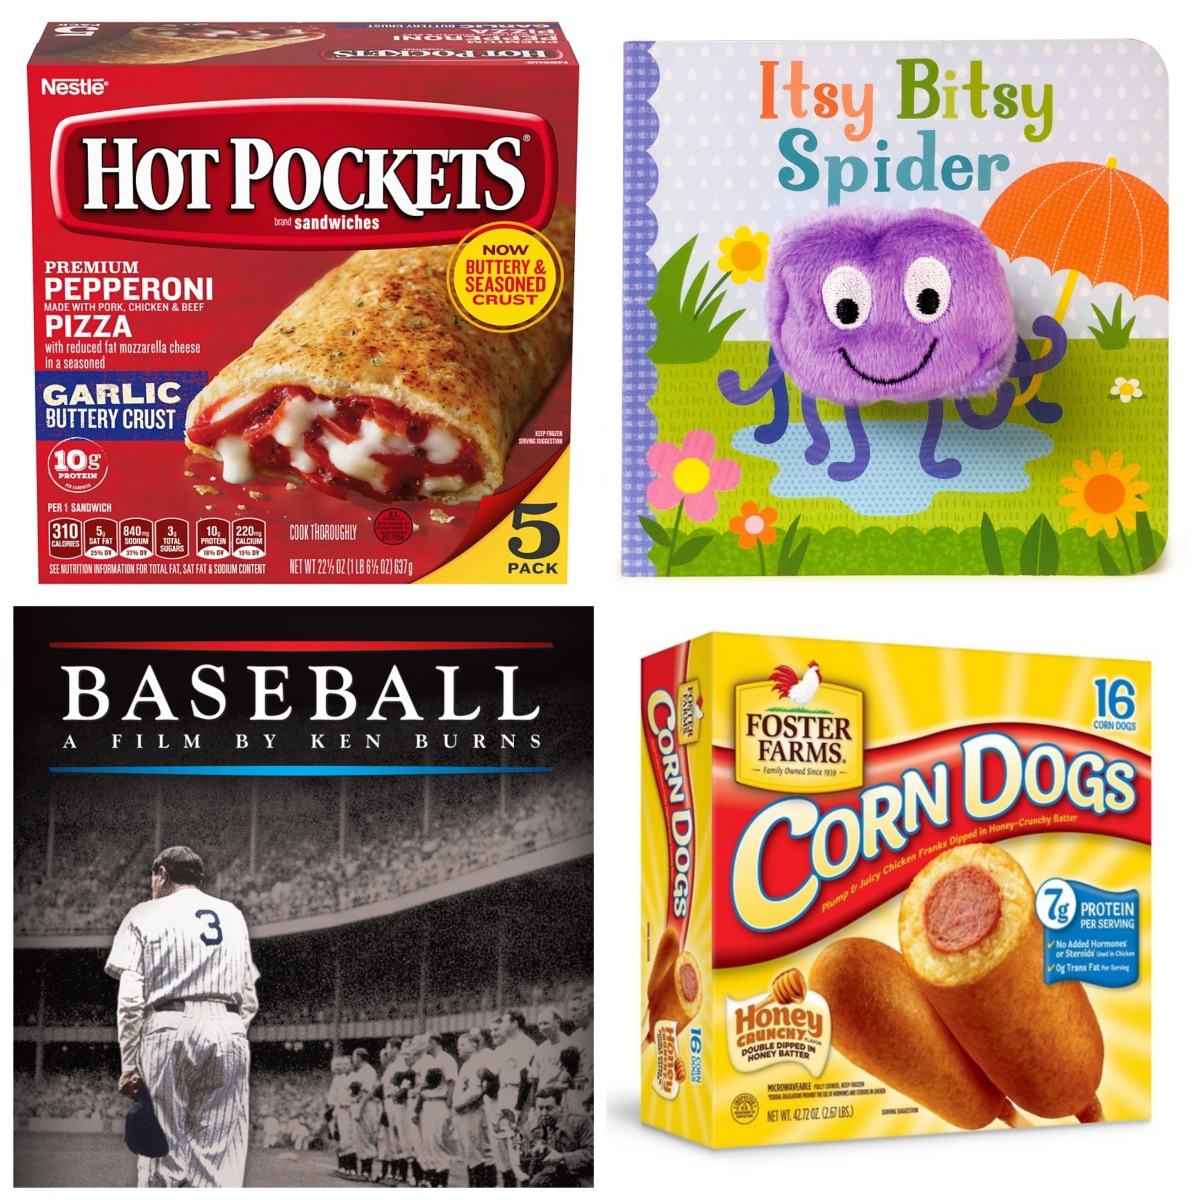 Hot Pockets, the Itsy Bitsy Spider, the Ken Burns Baseball documentary, and Corn Dogs.